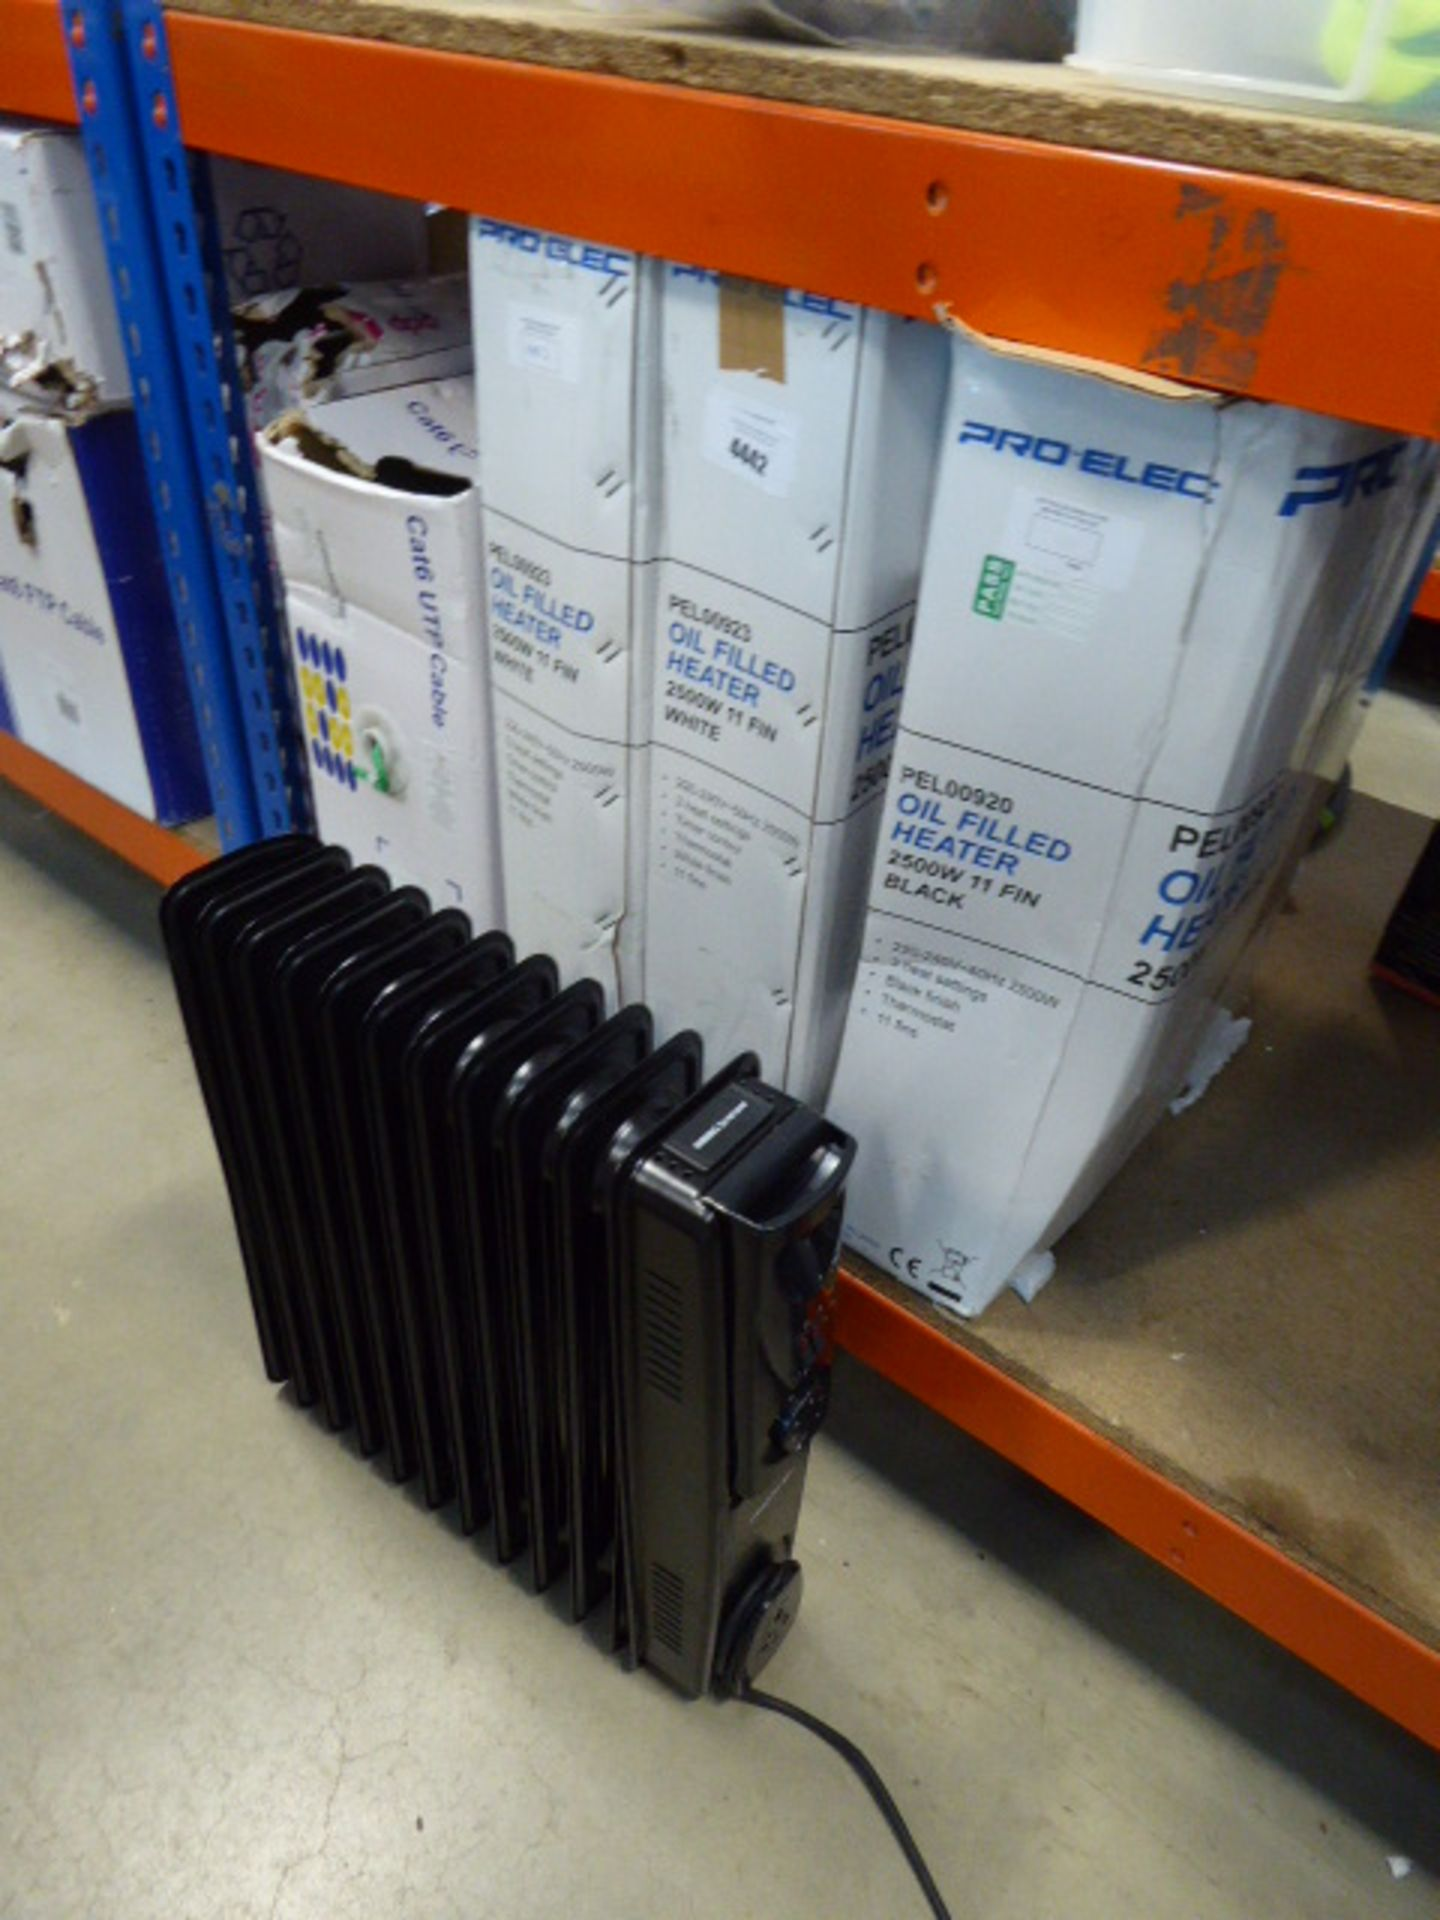 4 Pro-Elec oil filled radiators